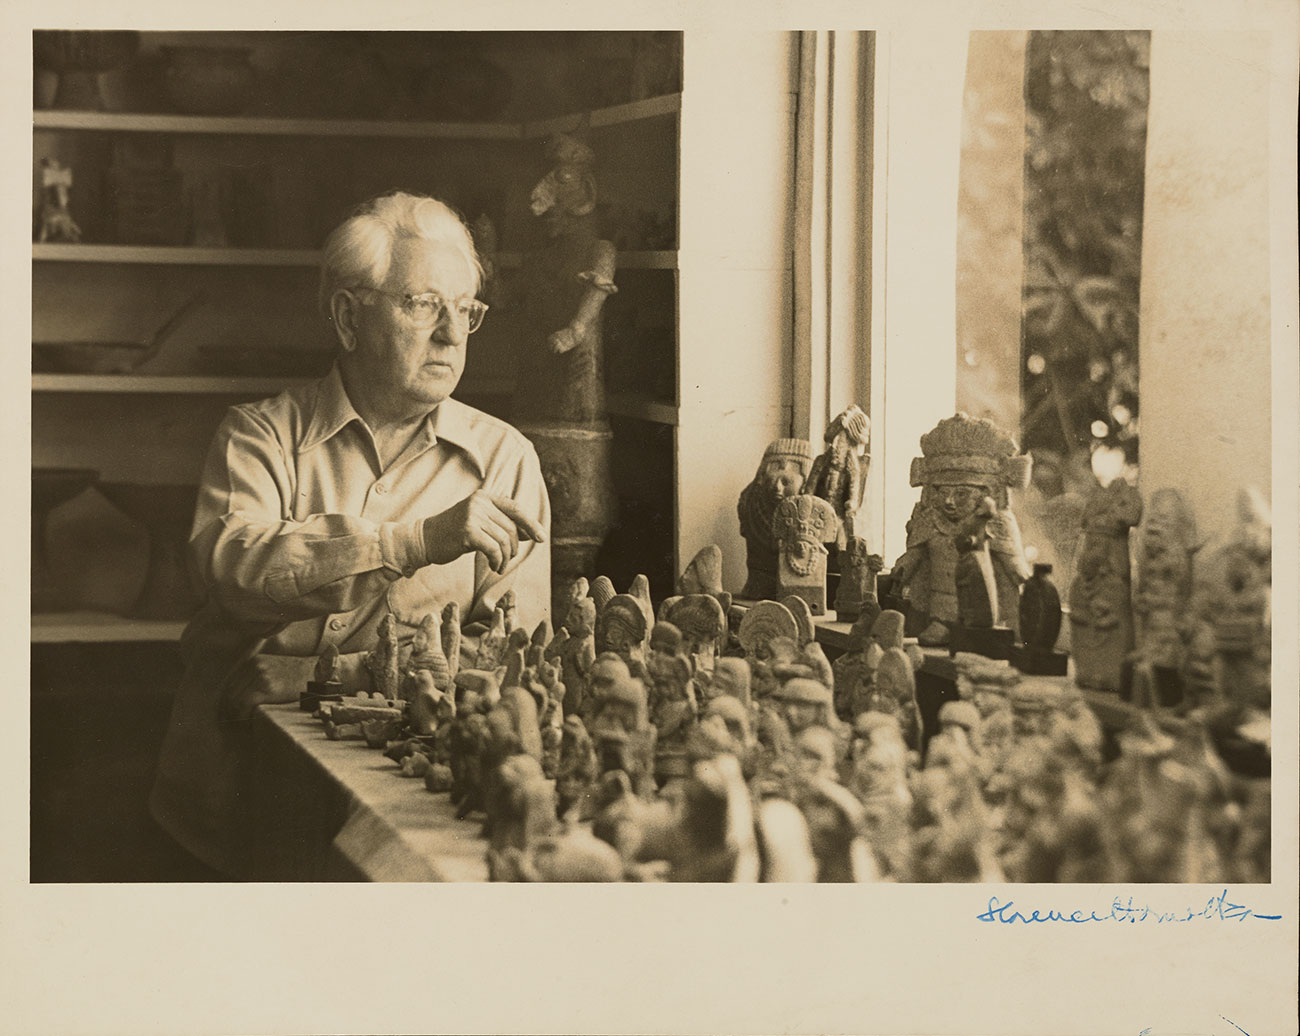 Sepia-toned black and white photo showing a seated man with white hair behind a table filled with small pre-Hispanic ceramic figurines